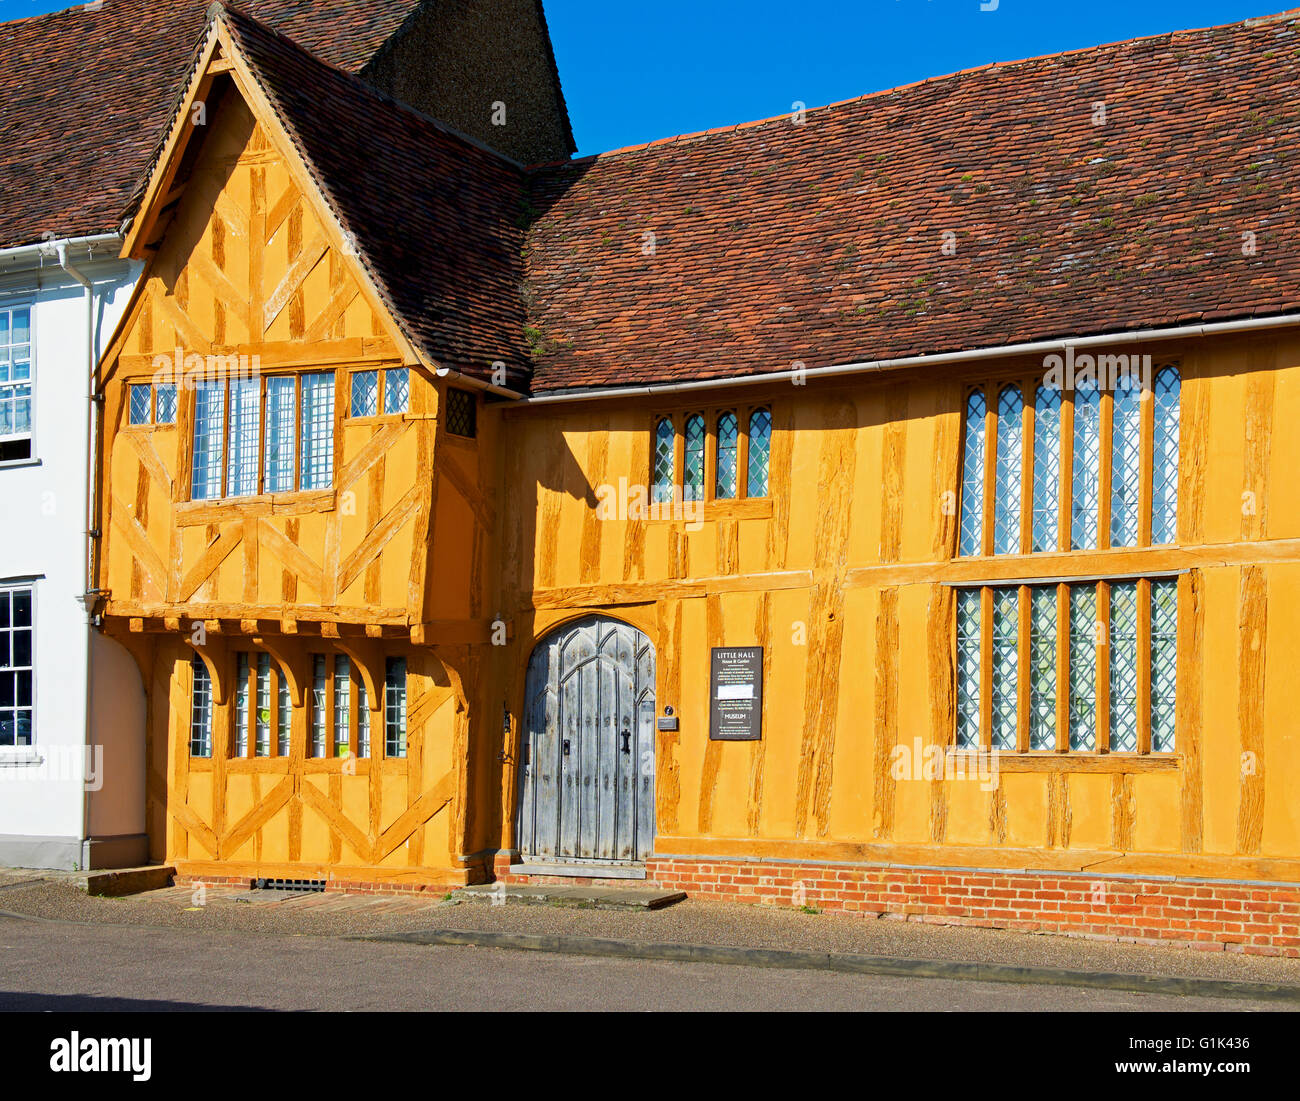 Little Hall, in the village of Lavenham, Suffolk, England UK - Stock Image